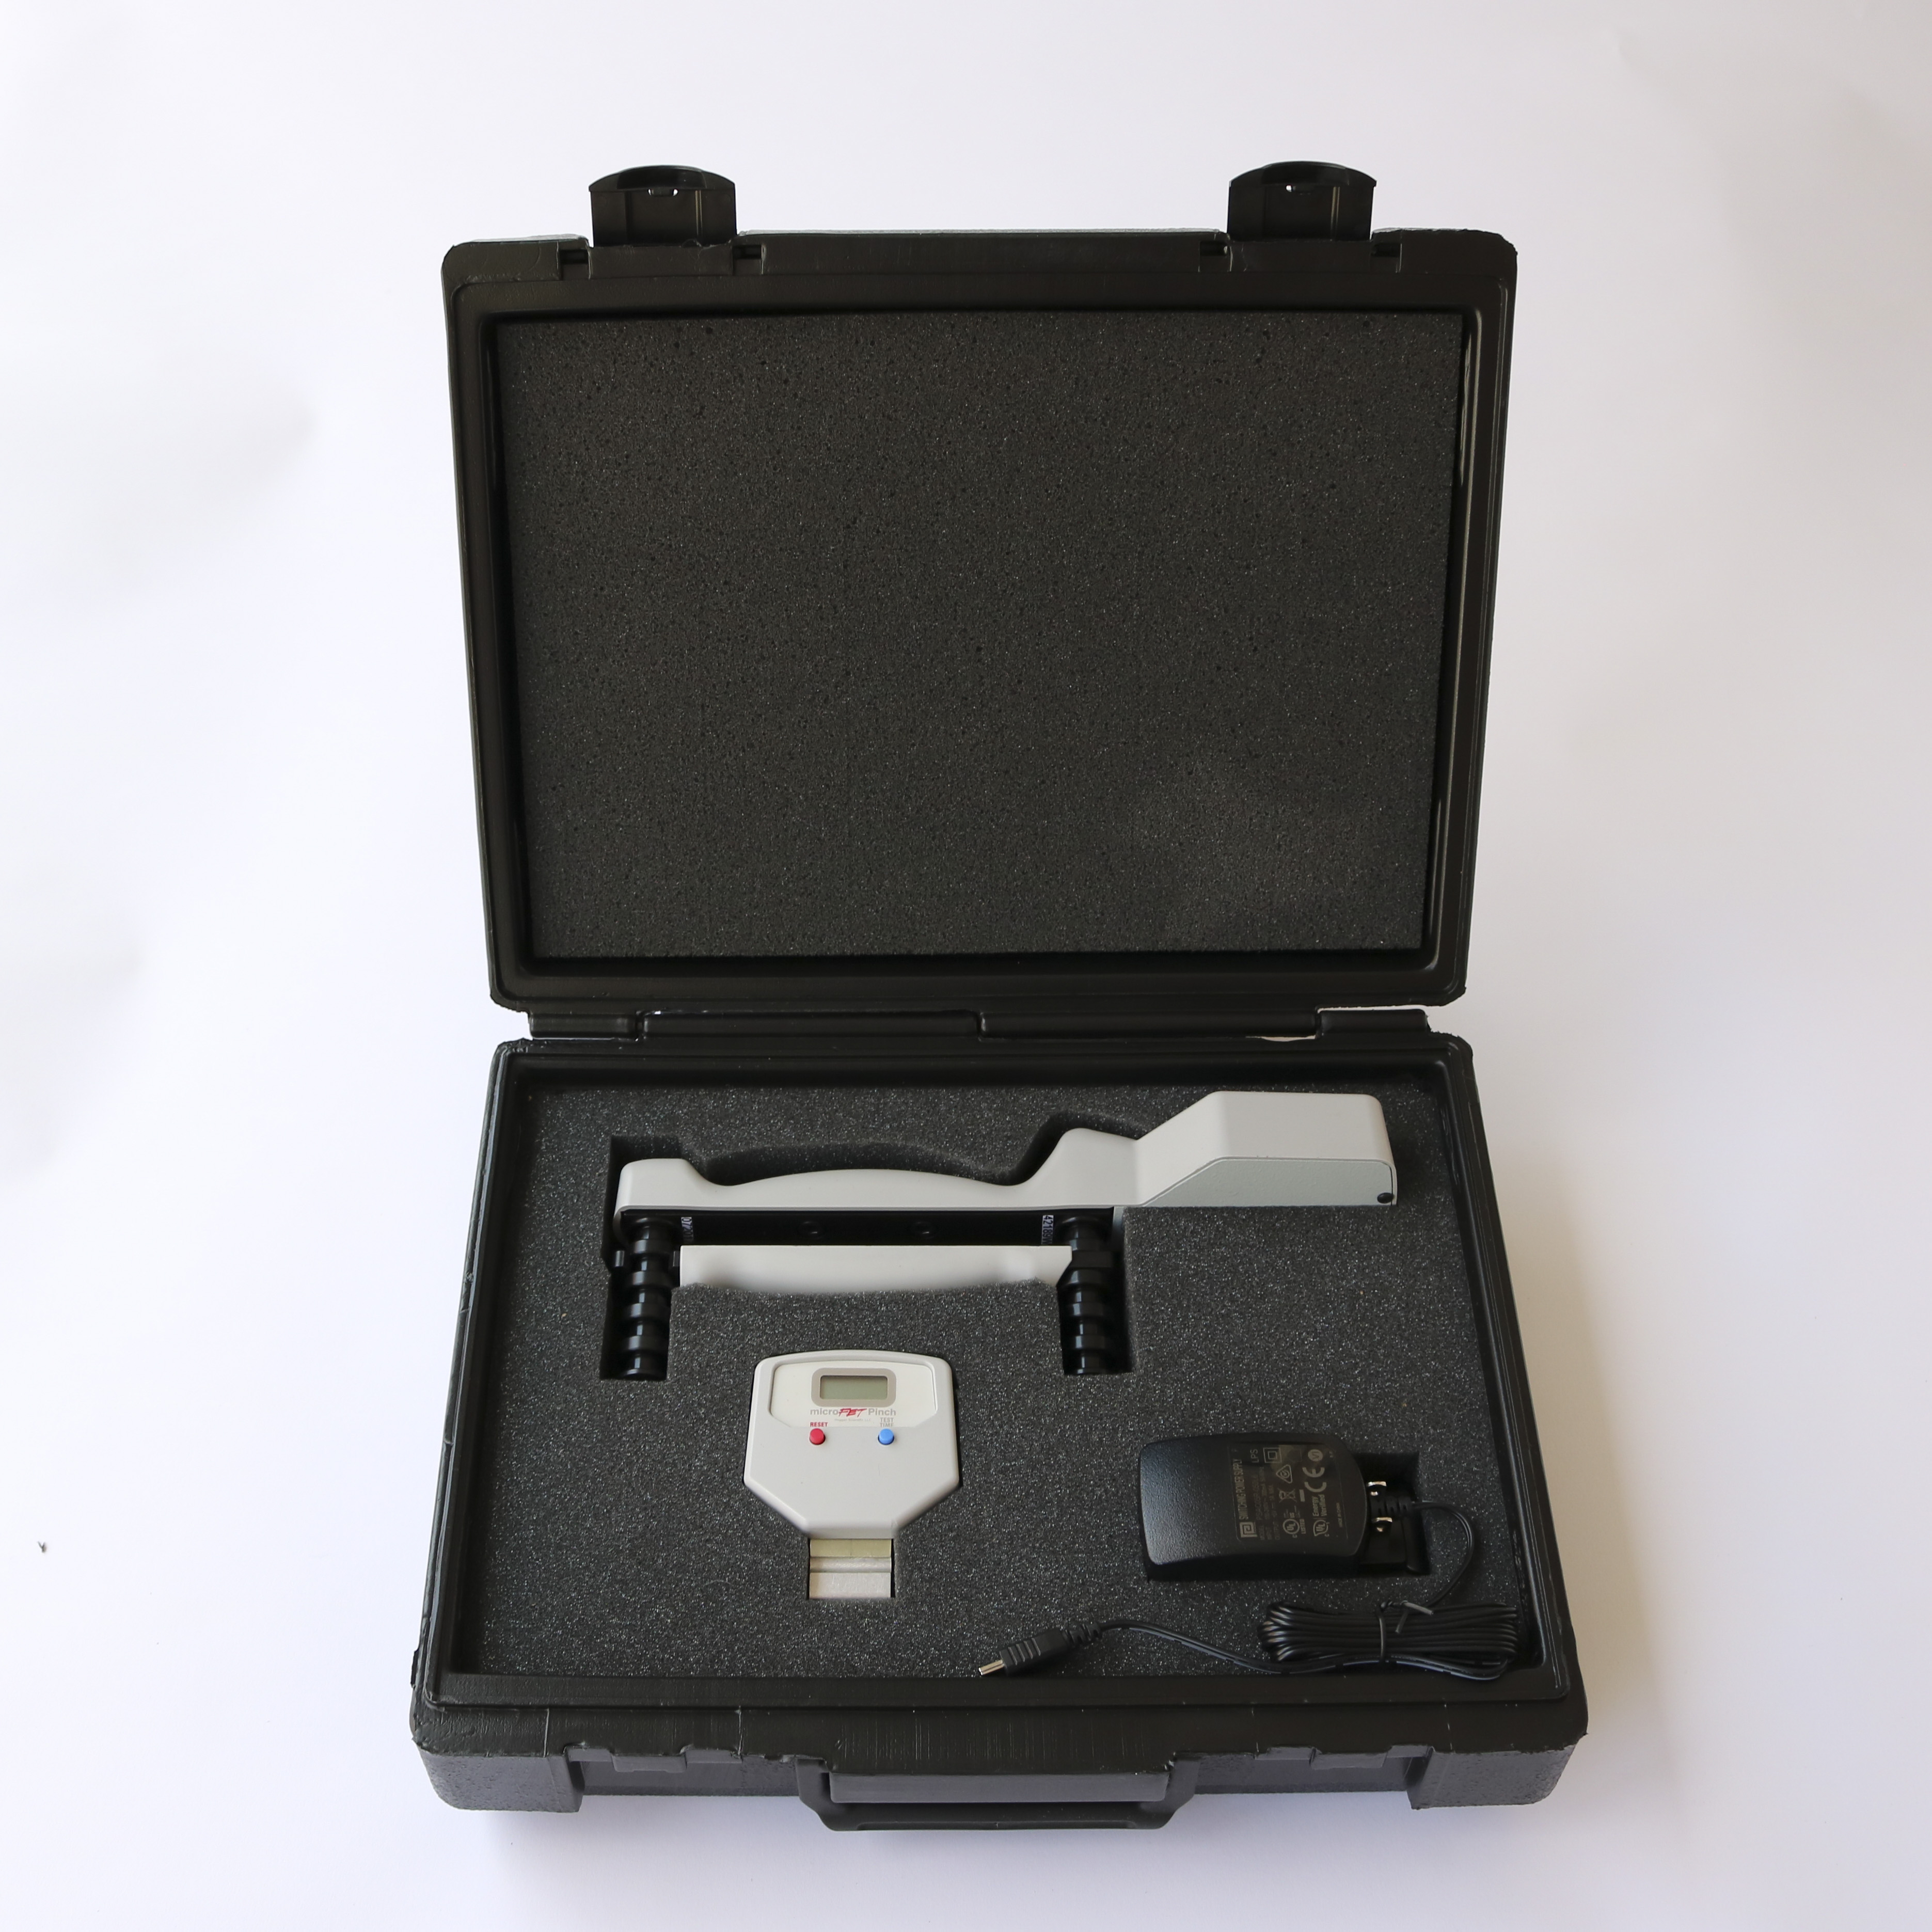 Microfet 2 Dynamometer : Digital hand evaluation kit grip and pinch dynamometer